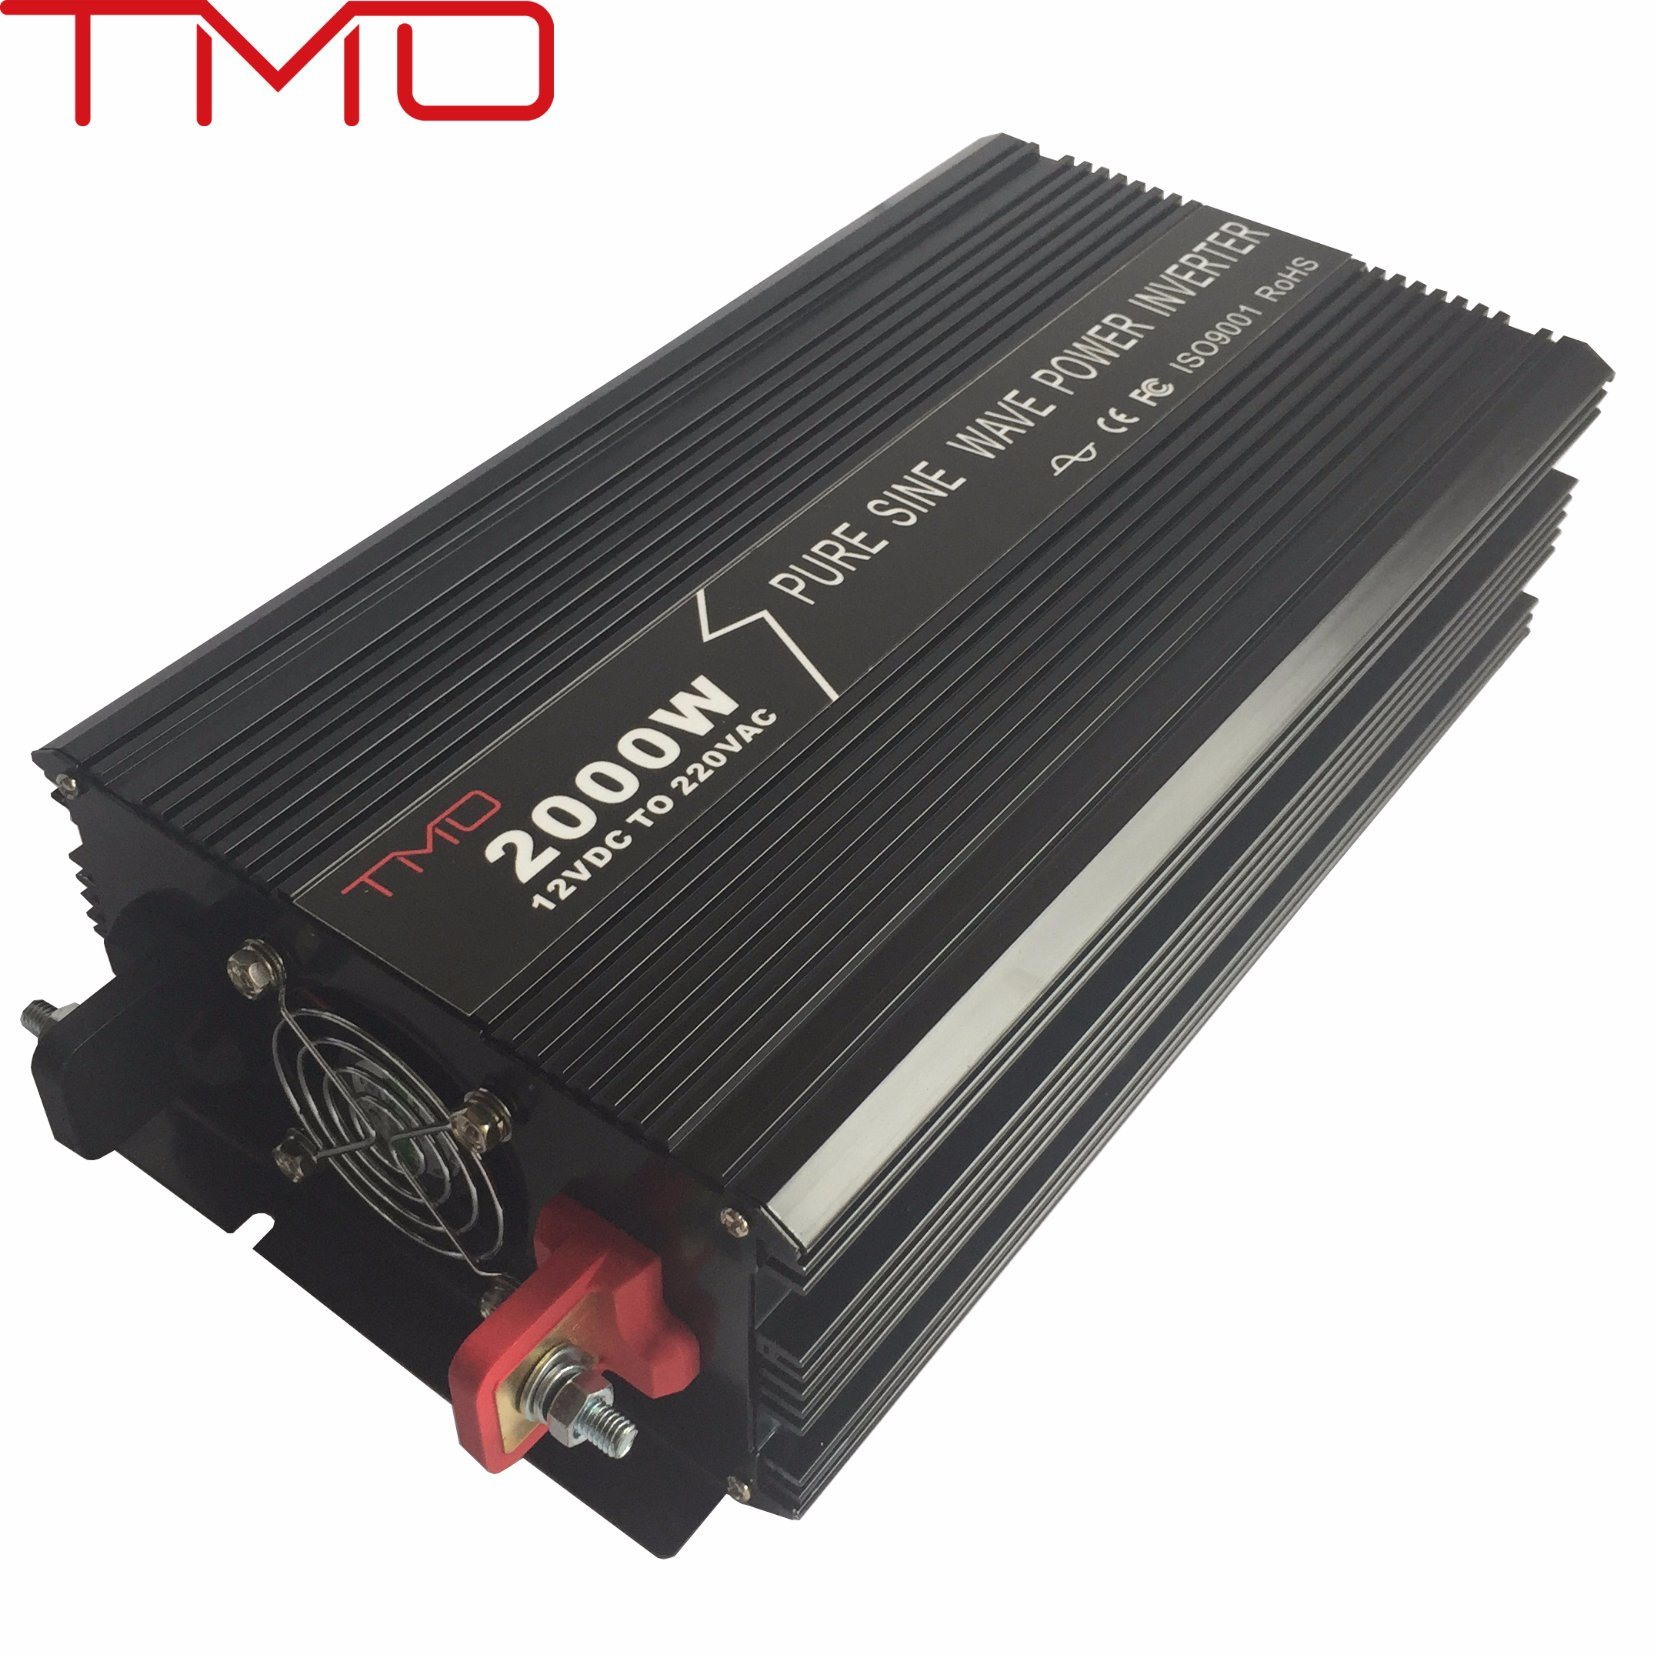 2000kVA 12V/ 24V/ 48V DC to AC 220V/230V/240V Solar Power Inverter 2000W